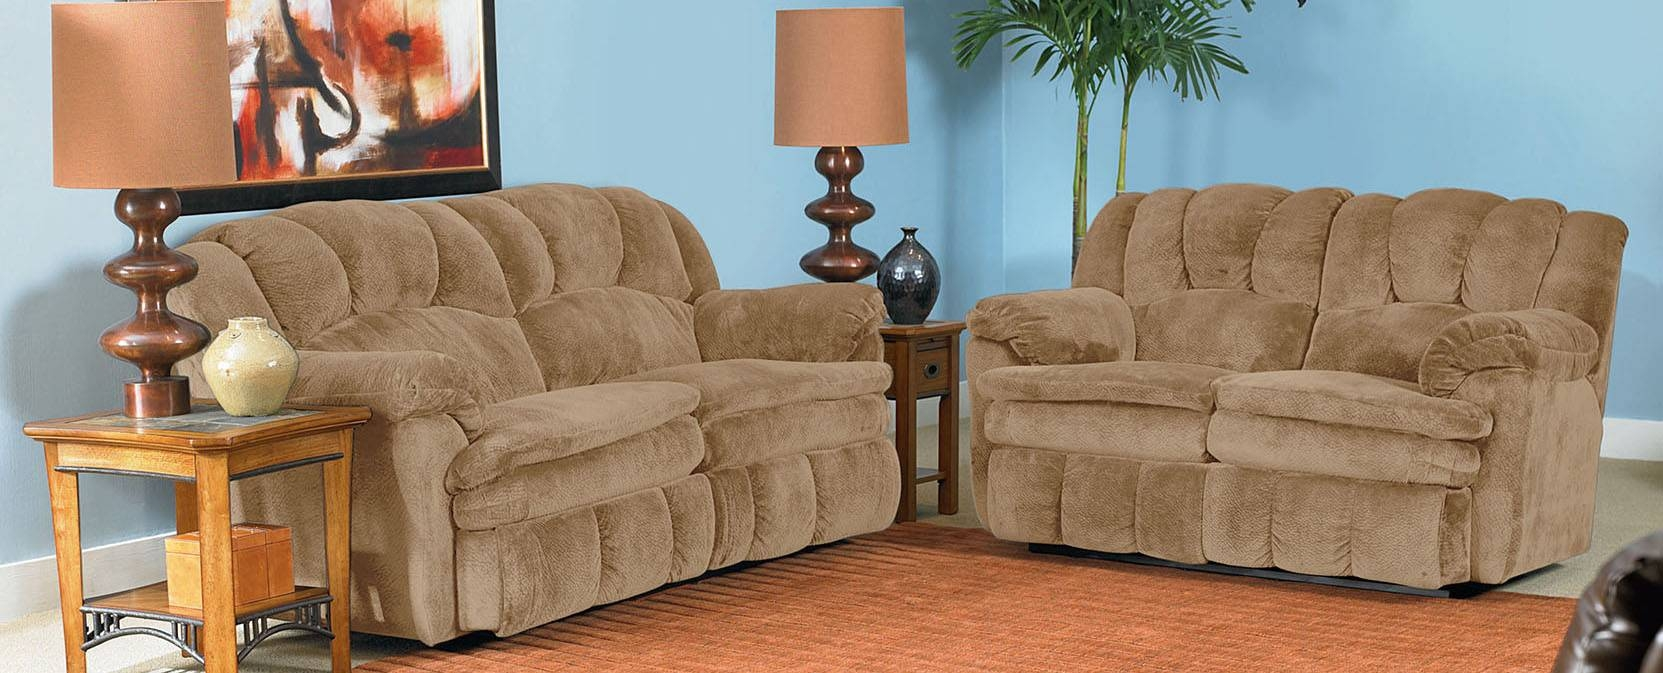 Sofas And Loveseats | Lane Sofa And Loveseat Sets | Lane Furniture with regard to Lane Furniture Sofas (Image 25 of 25)